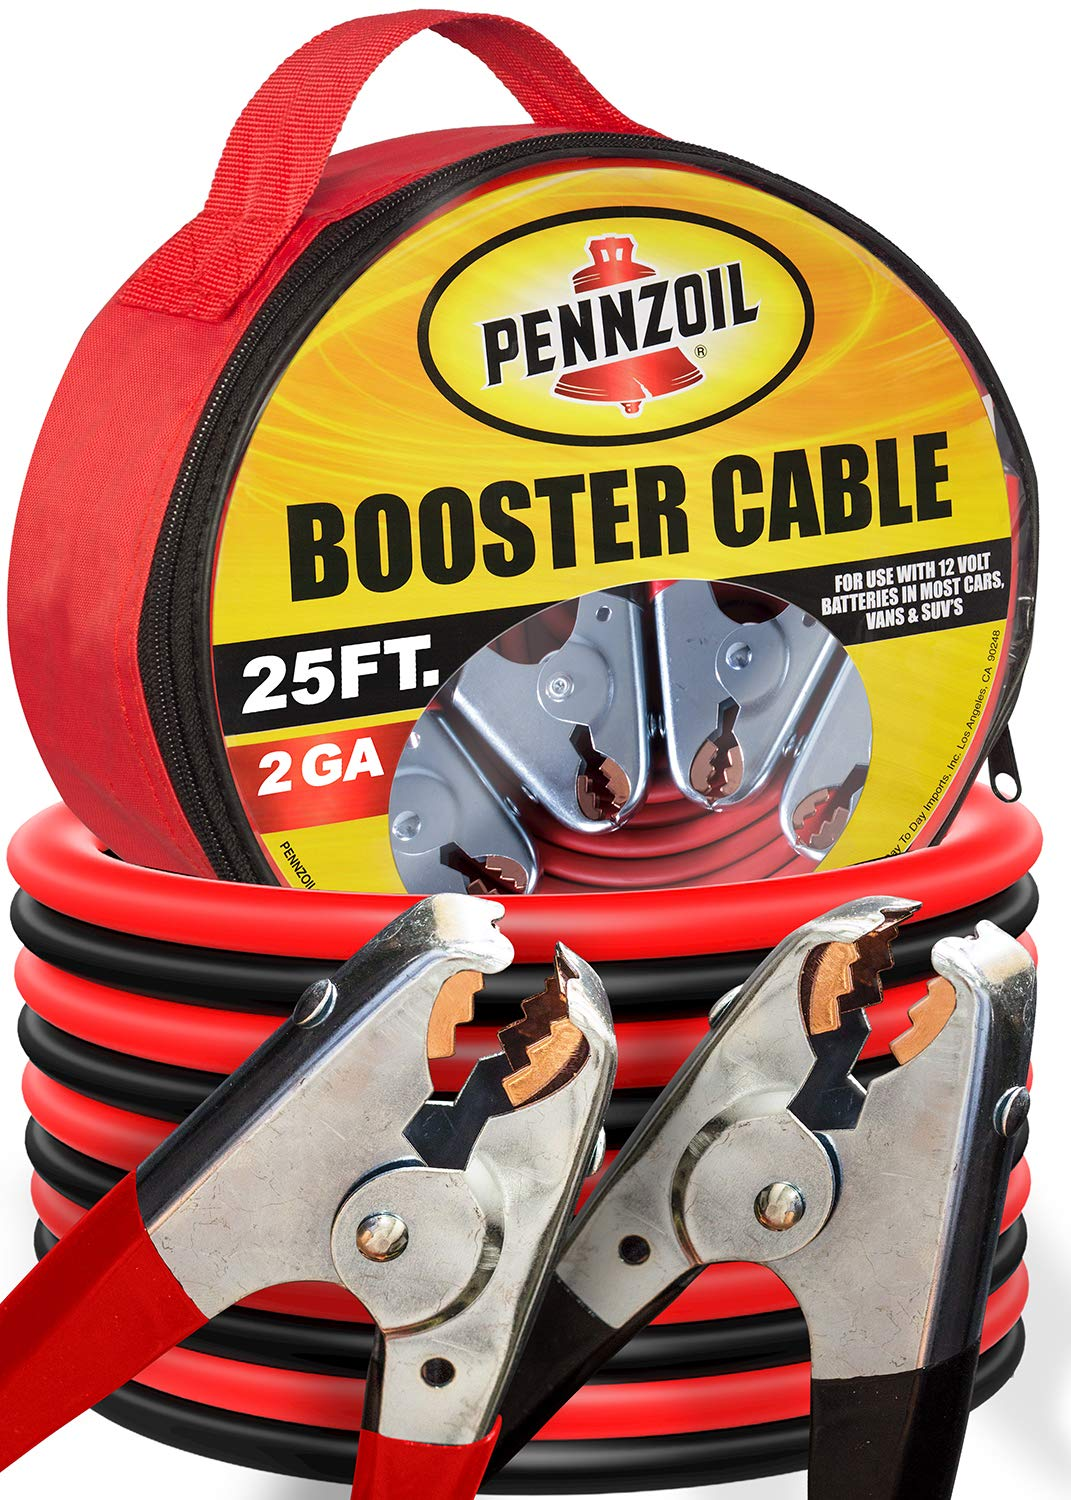 Pennzoil Jumper Cable (2-Gauge x 25-Foot) w/Carry Bag - 500-AMP Heavy Duty Battery Booster by Pennzoil